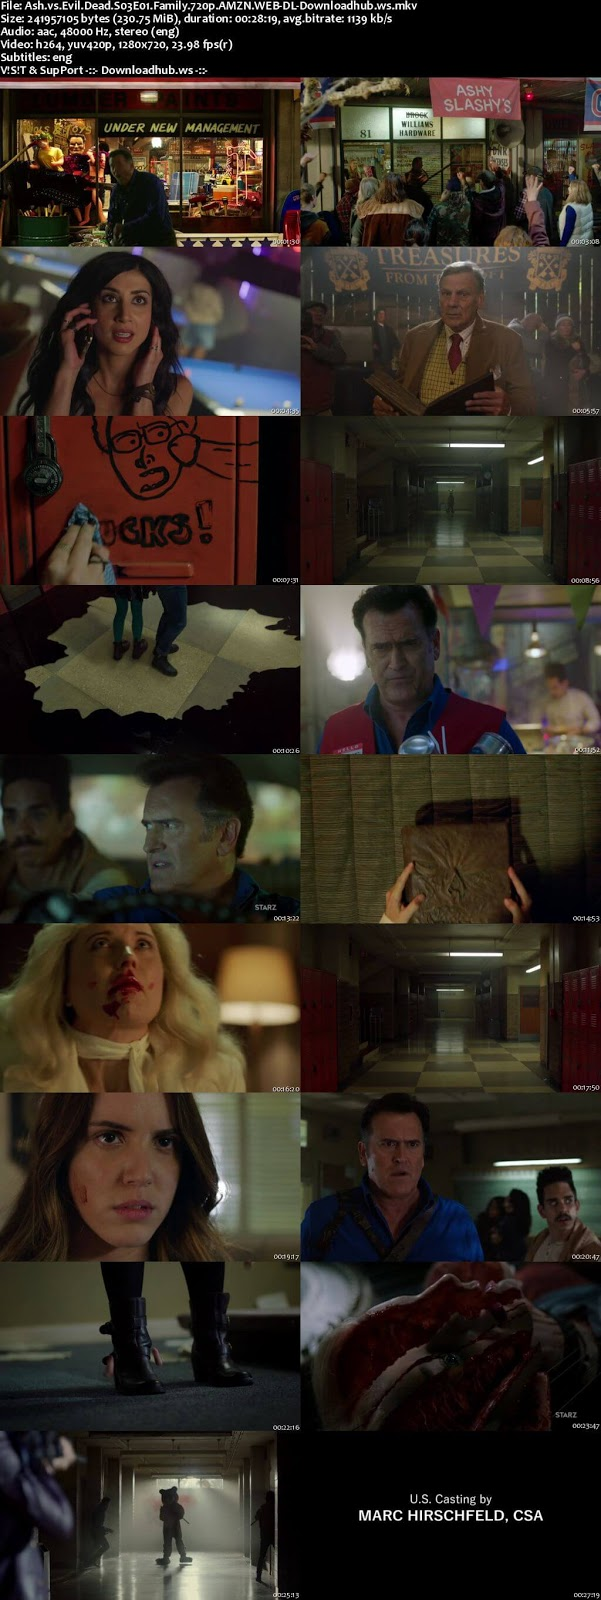 Ash vs Evil Dead S03E01 230MB WEB-DL 720p ESubs